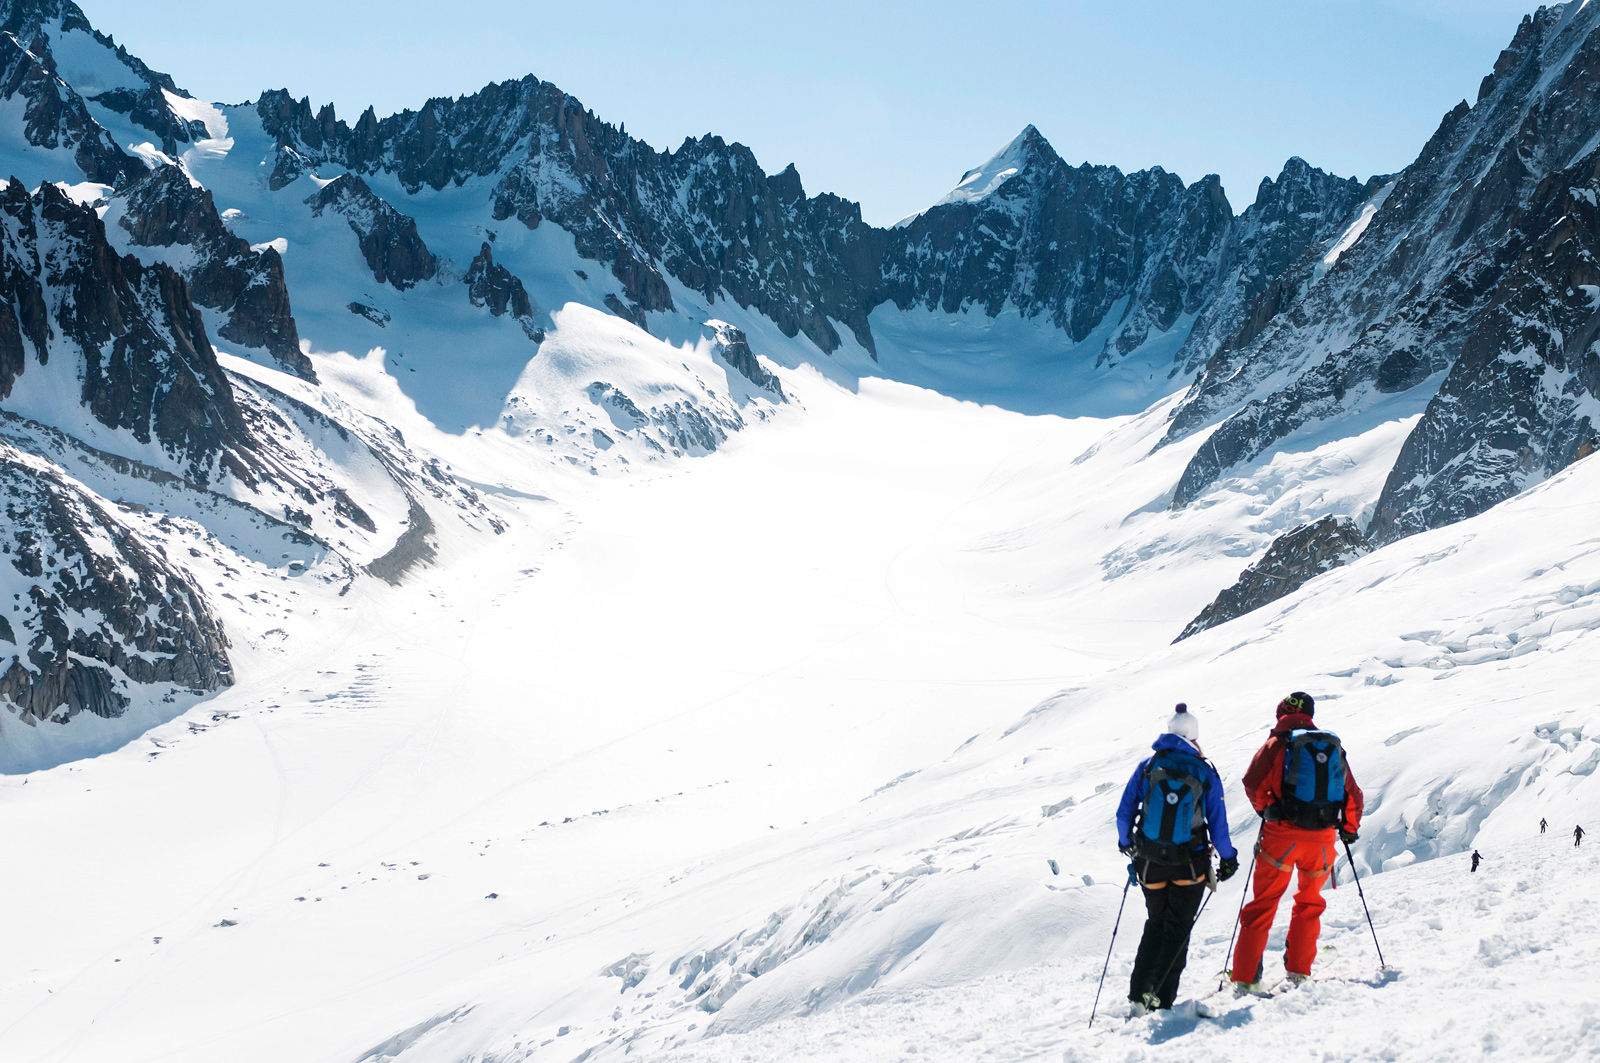 Tour planning: The Smarts scout a day's worth of touring on the Argentière Glacier from the top of the Grands Montets.